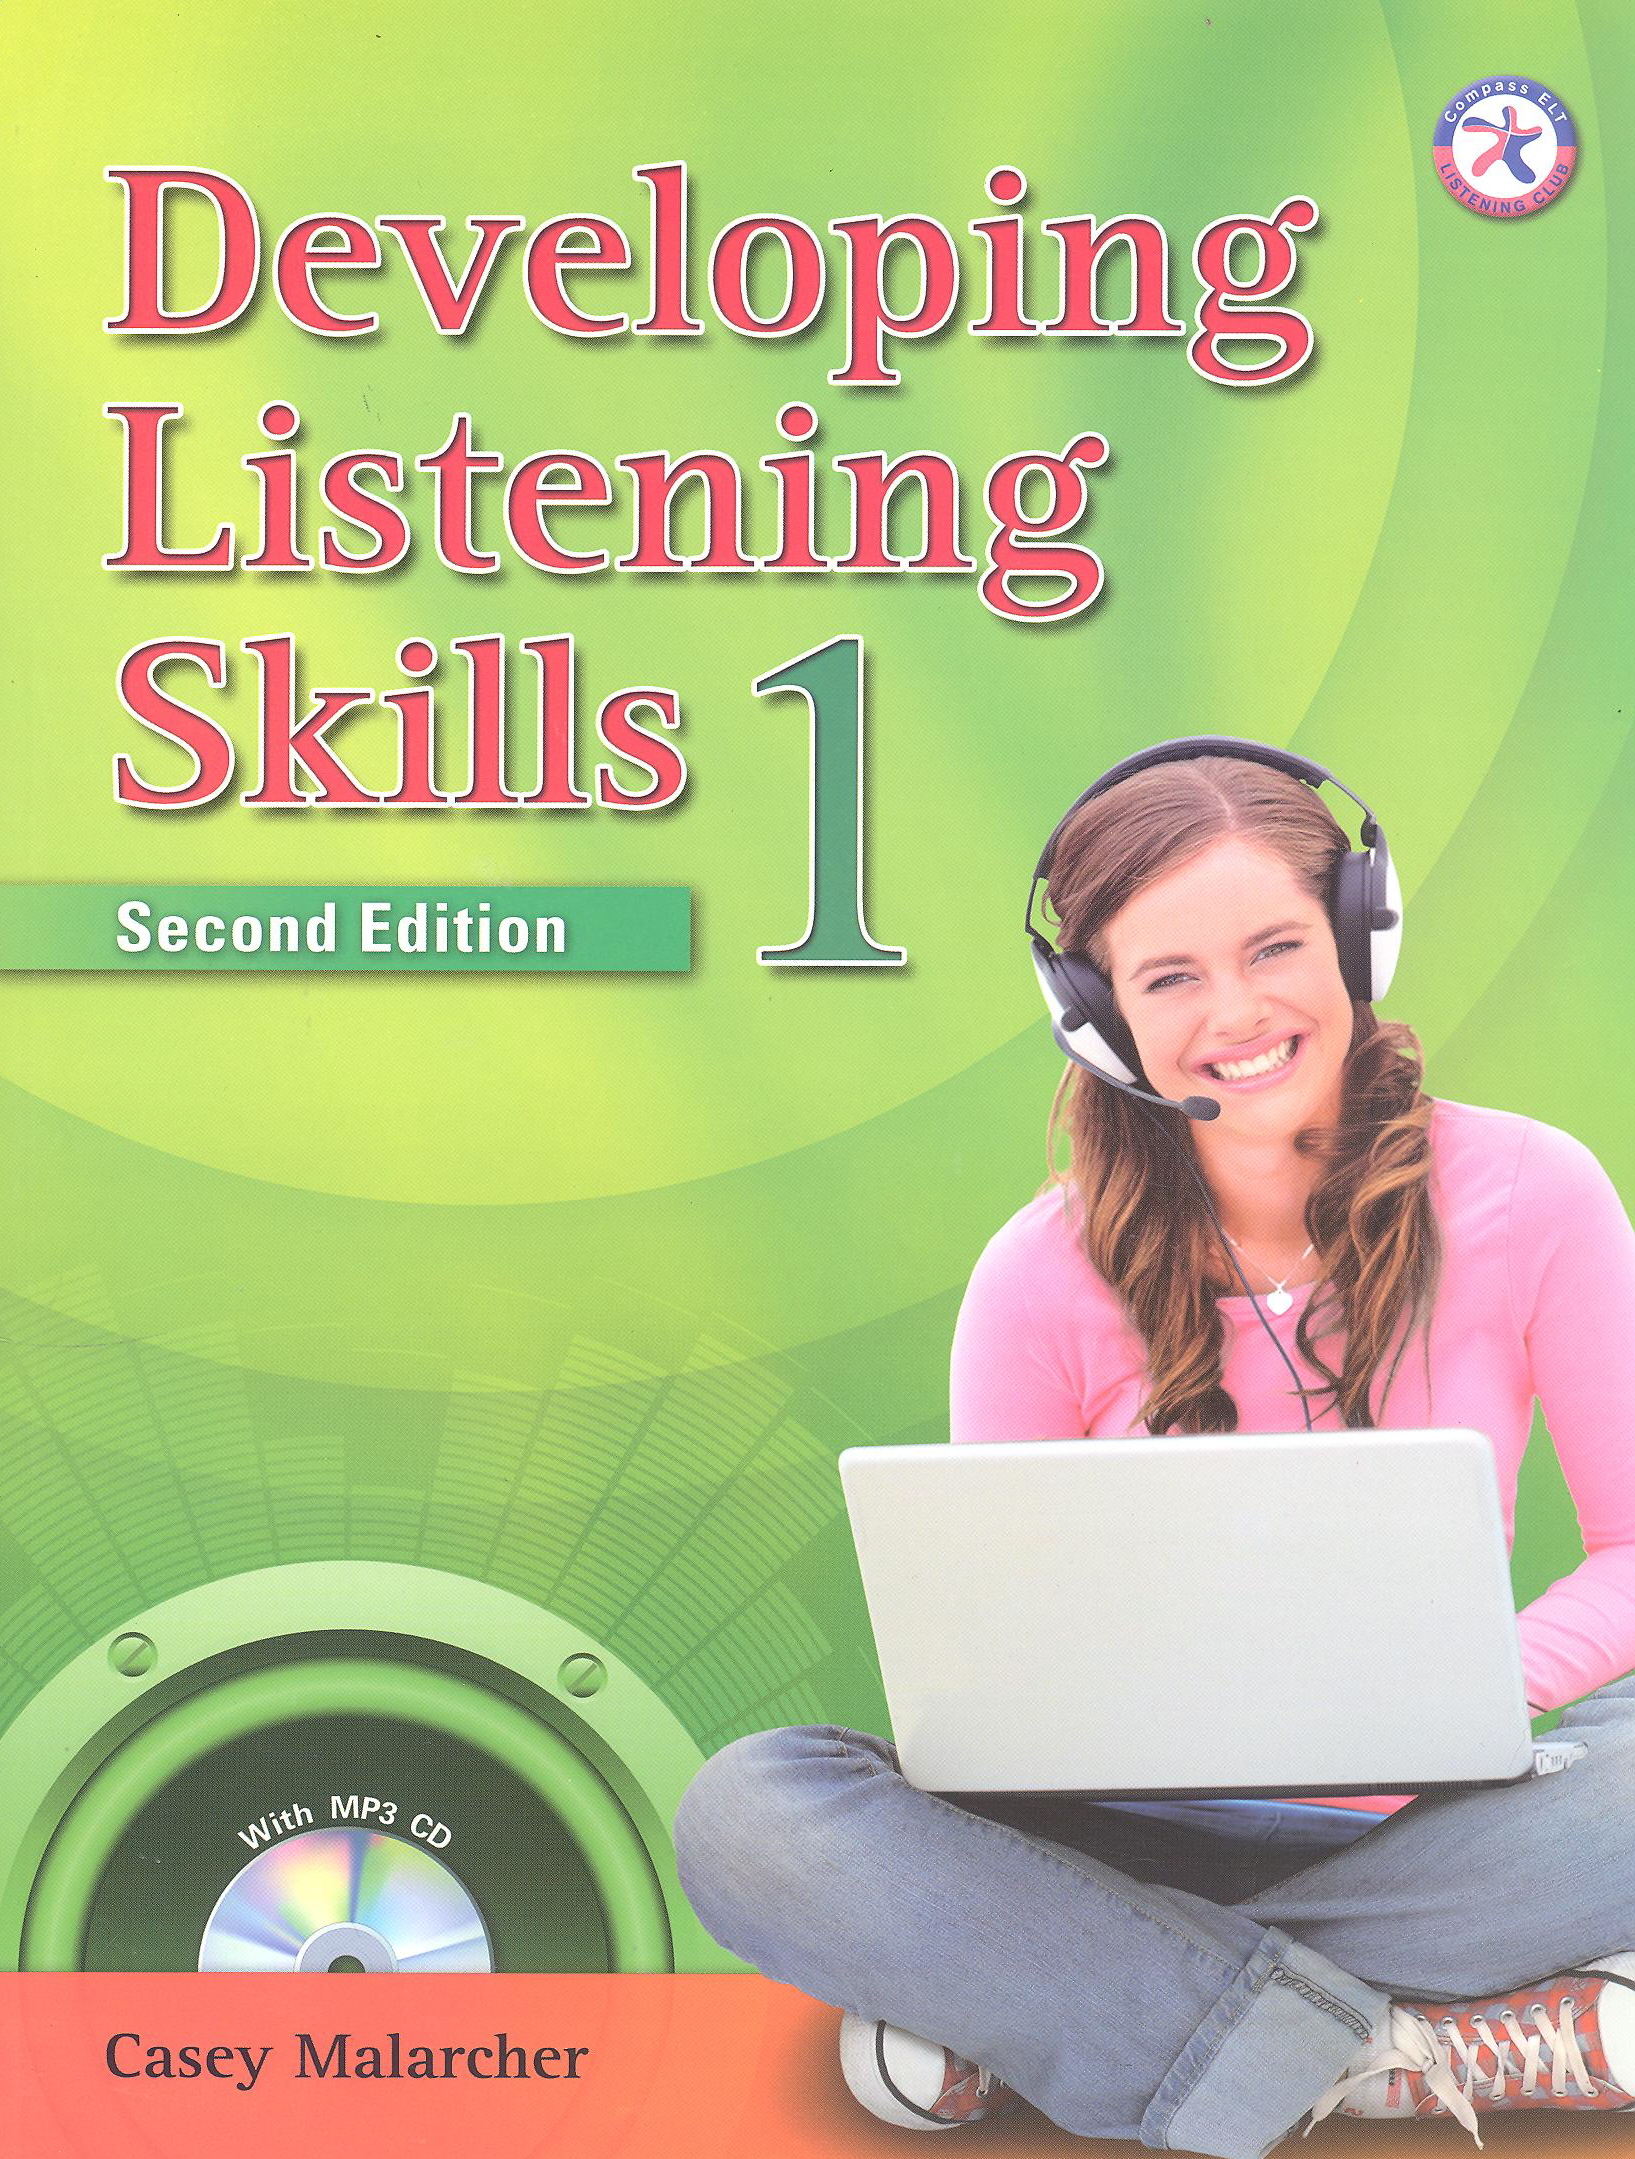 Developing Listening Skills 2nd Edition